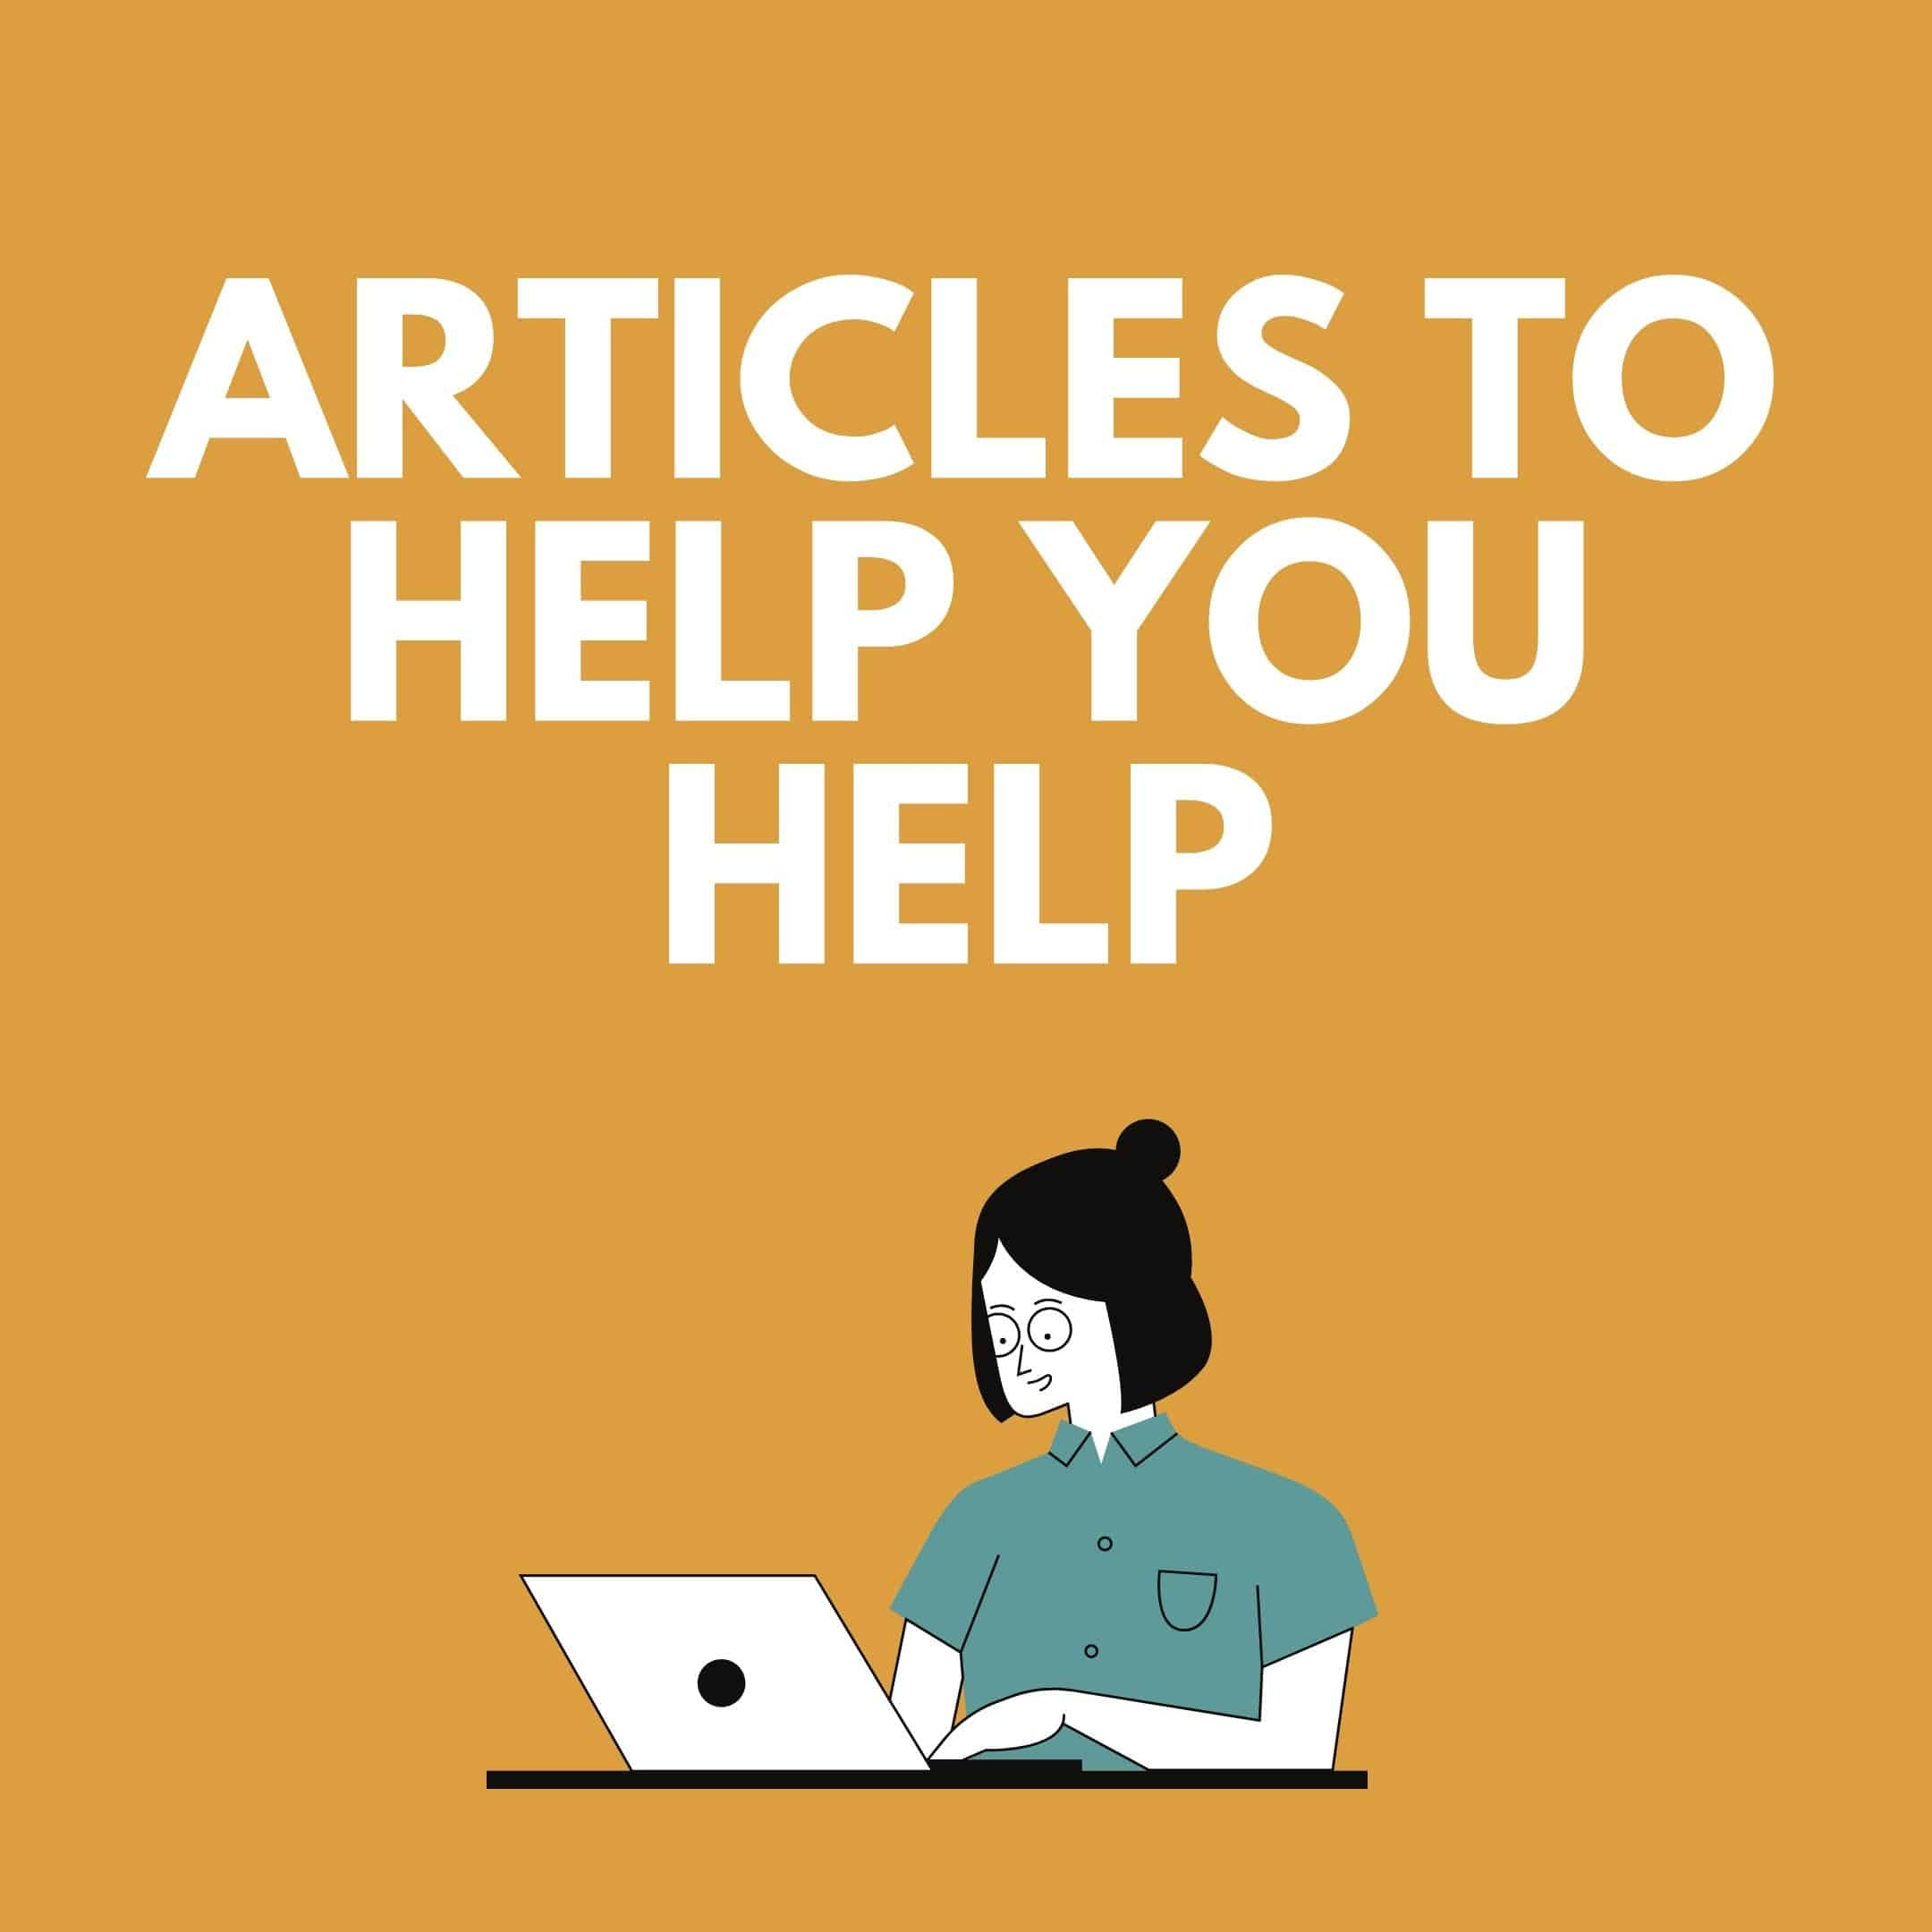 Articles To Help You Support Your Friend With Cancer